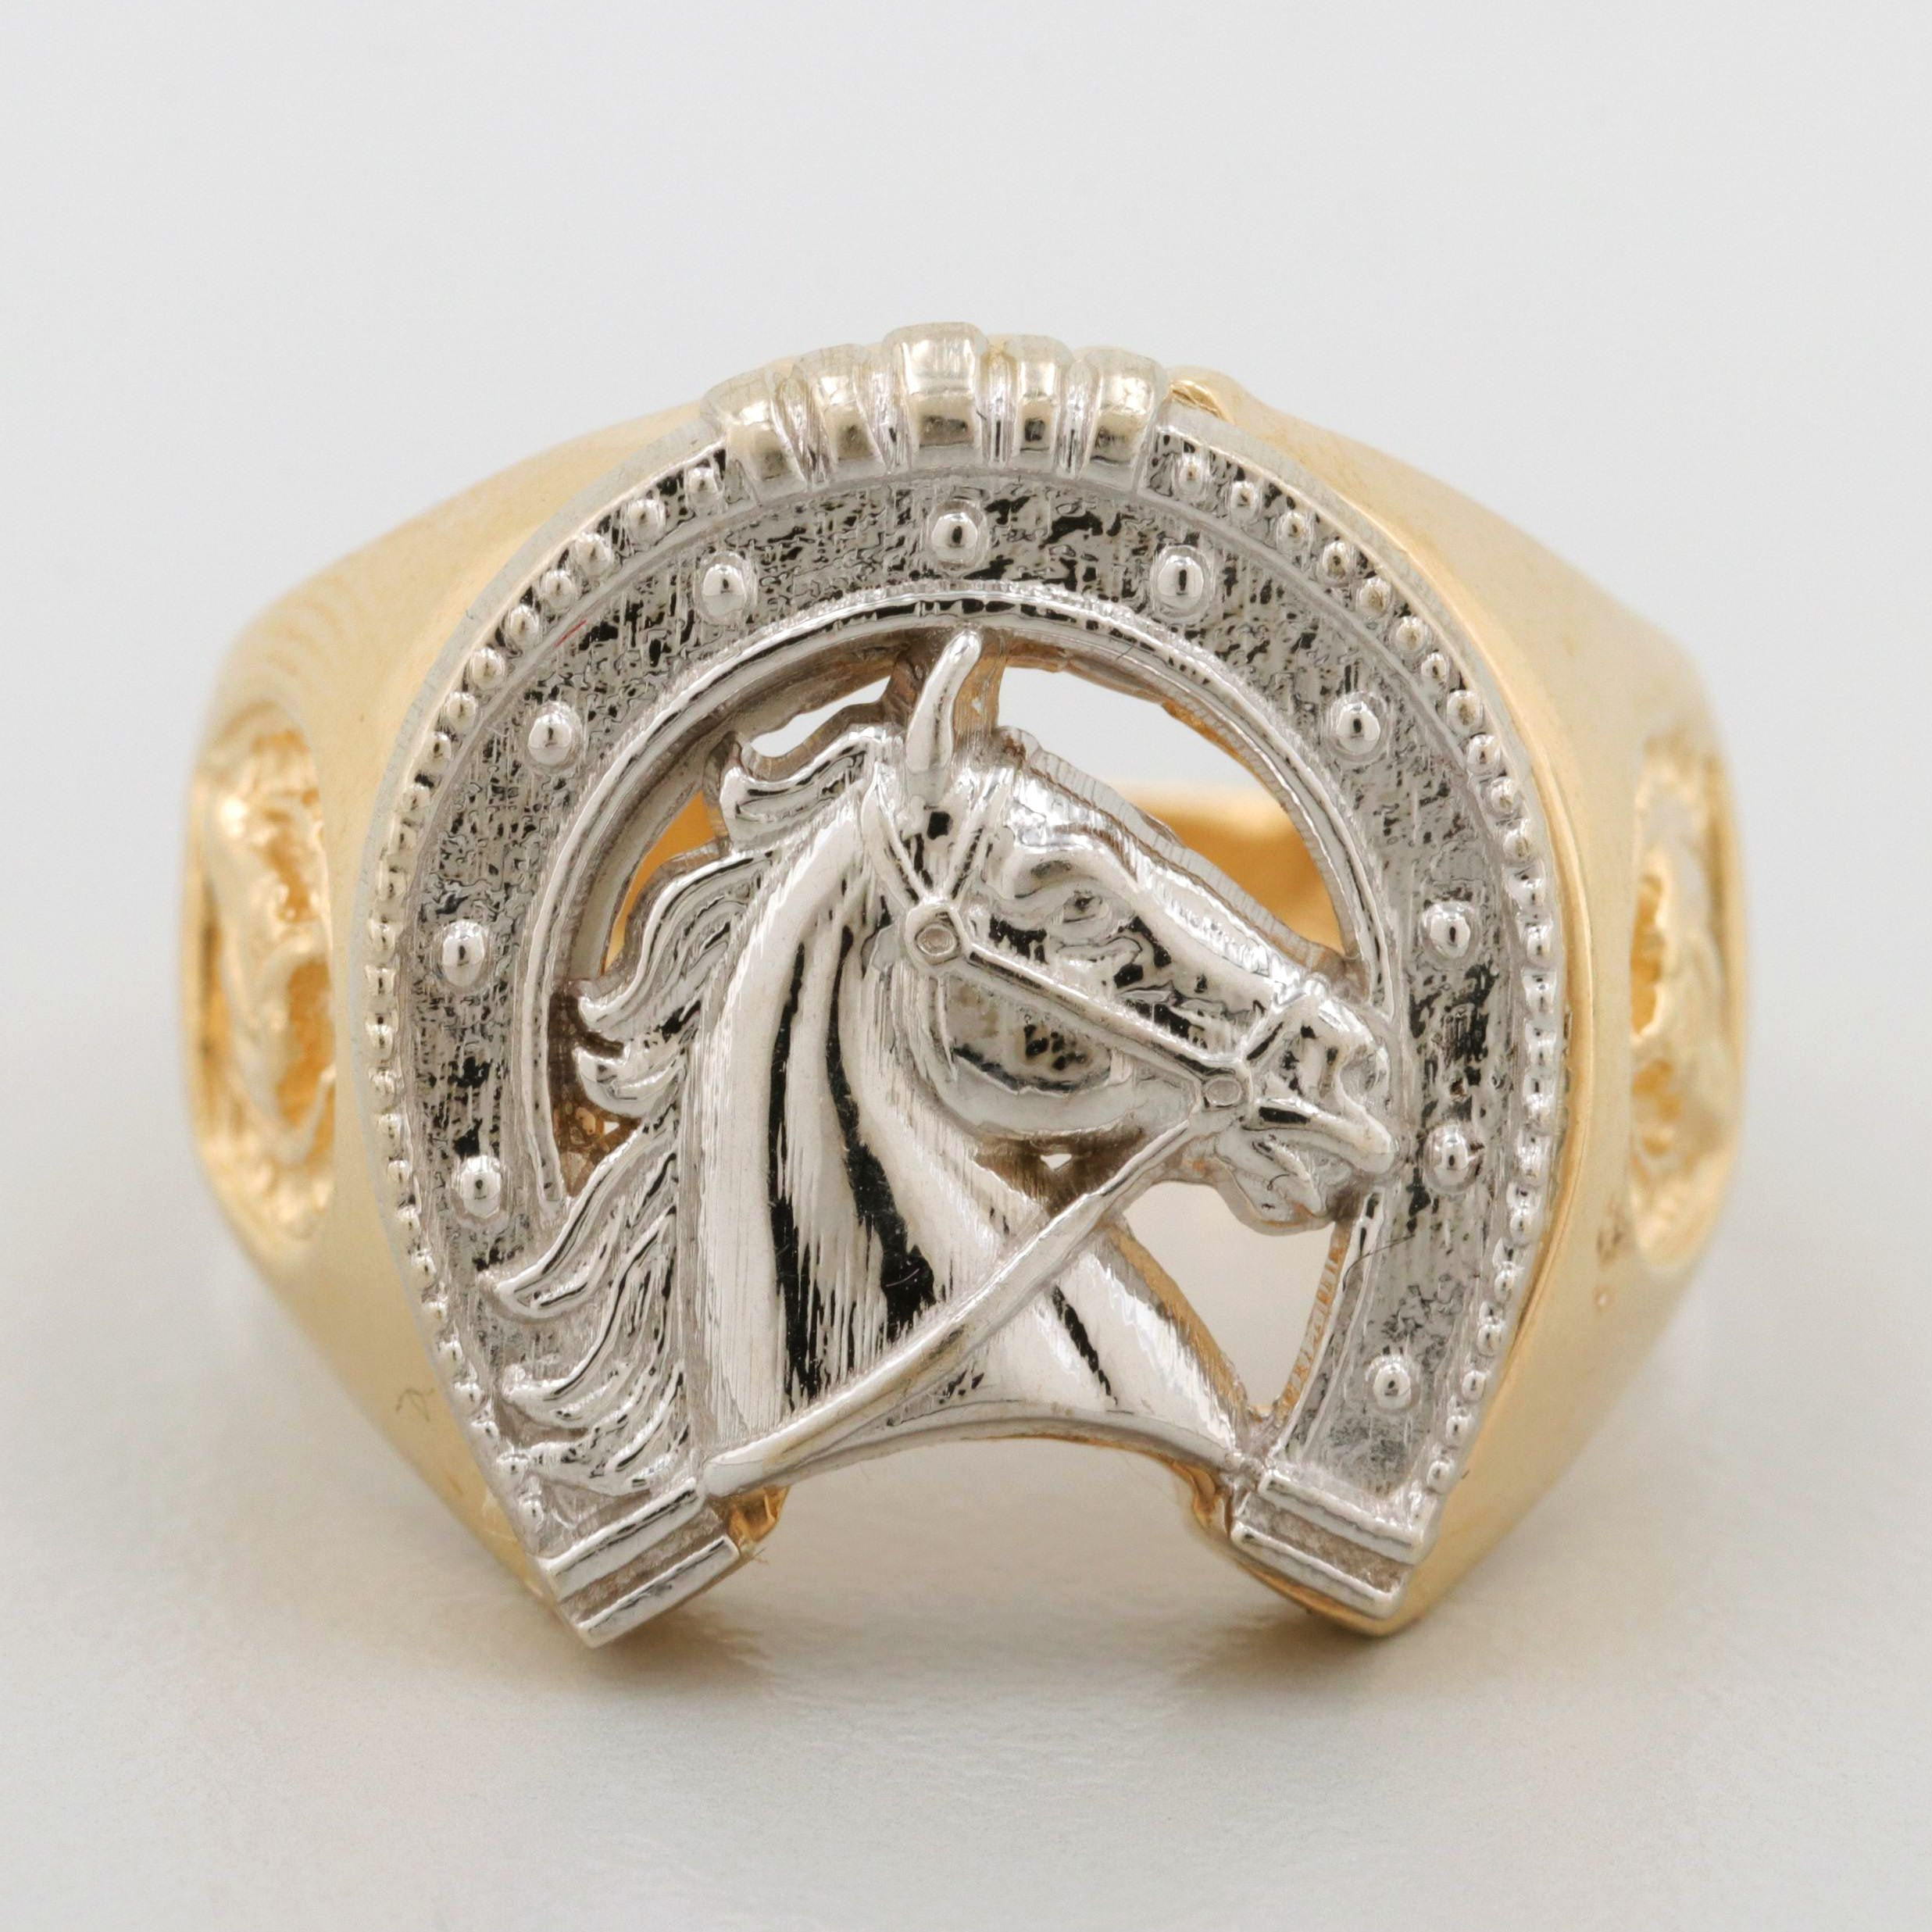 14K Yellow and White Gold Equestrian Ring